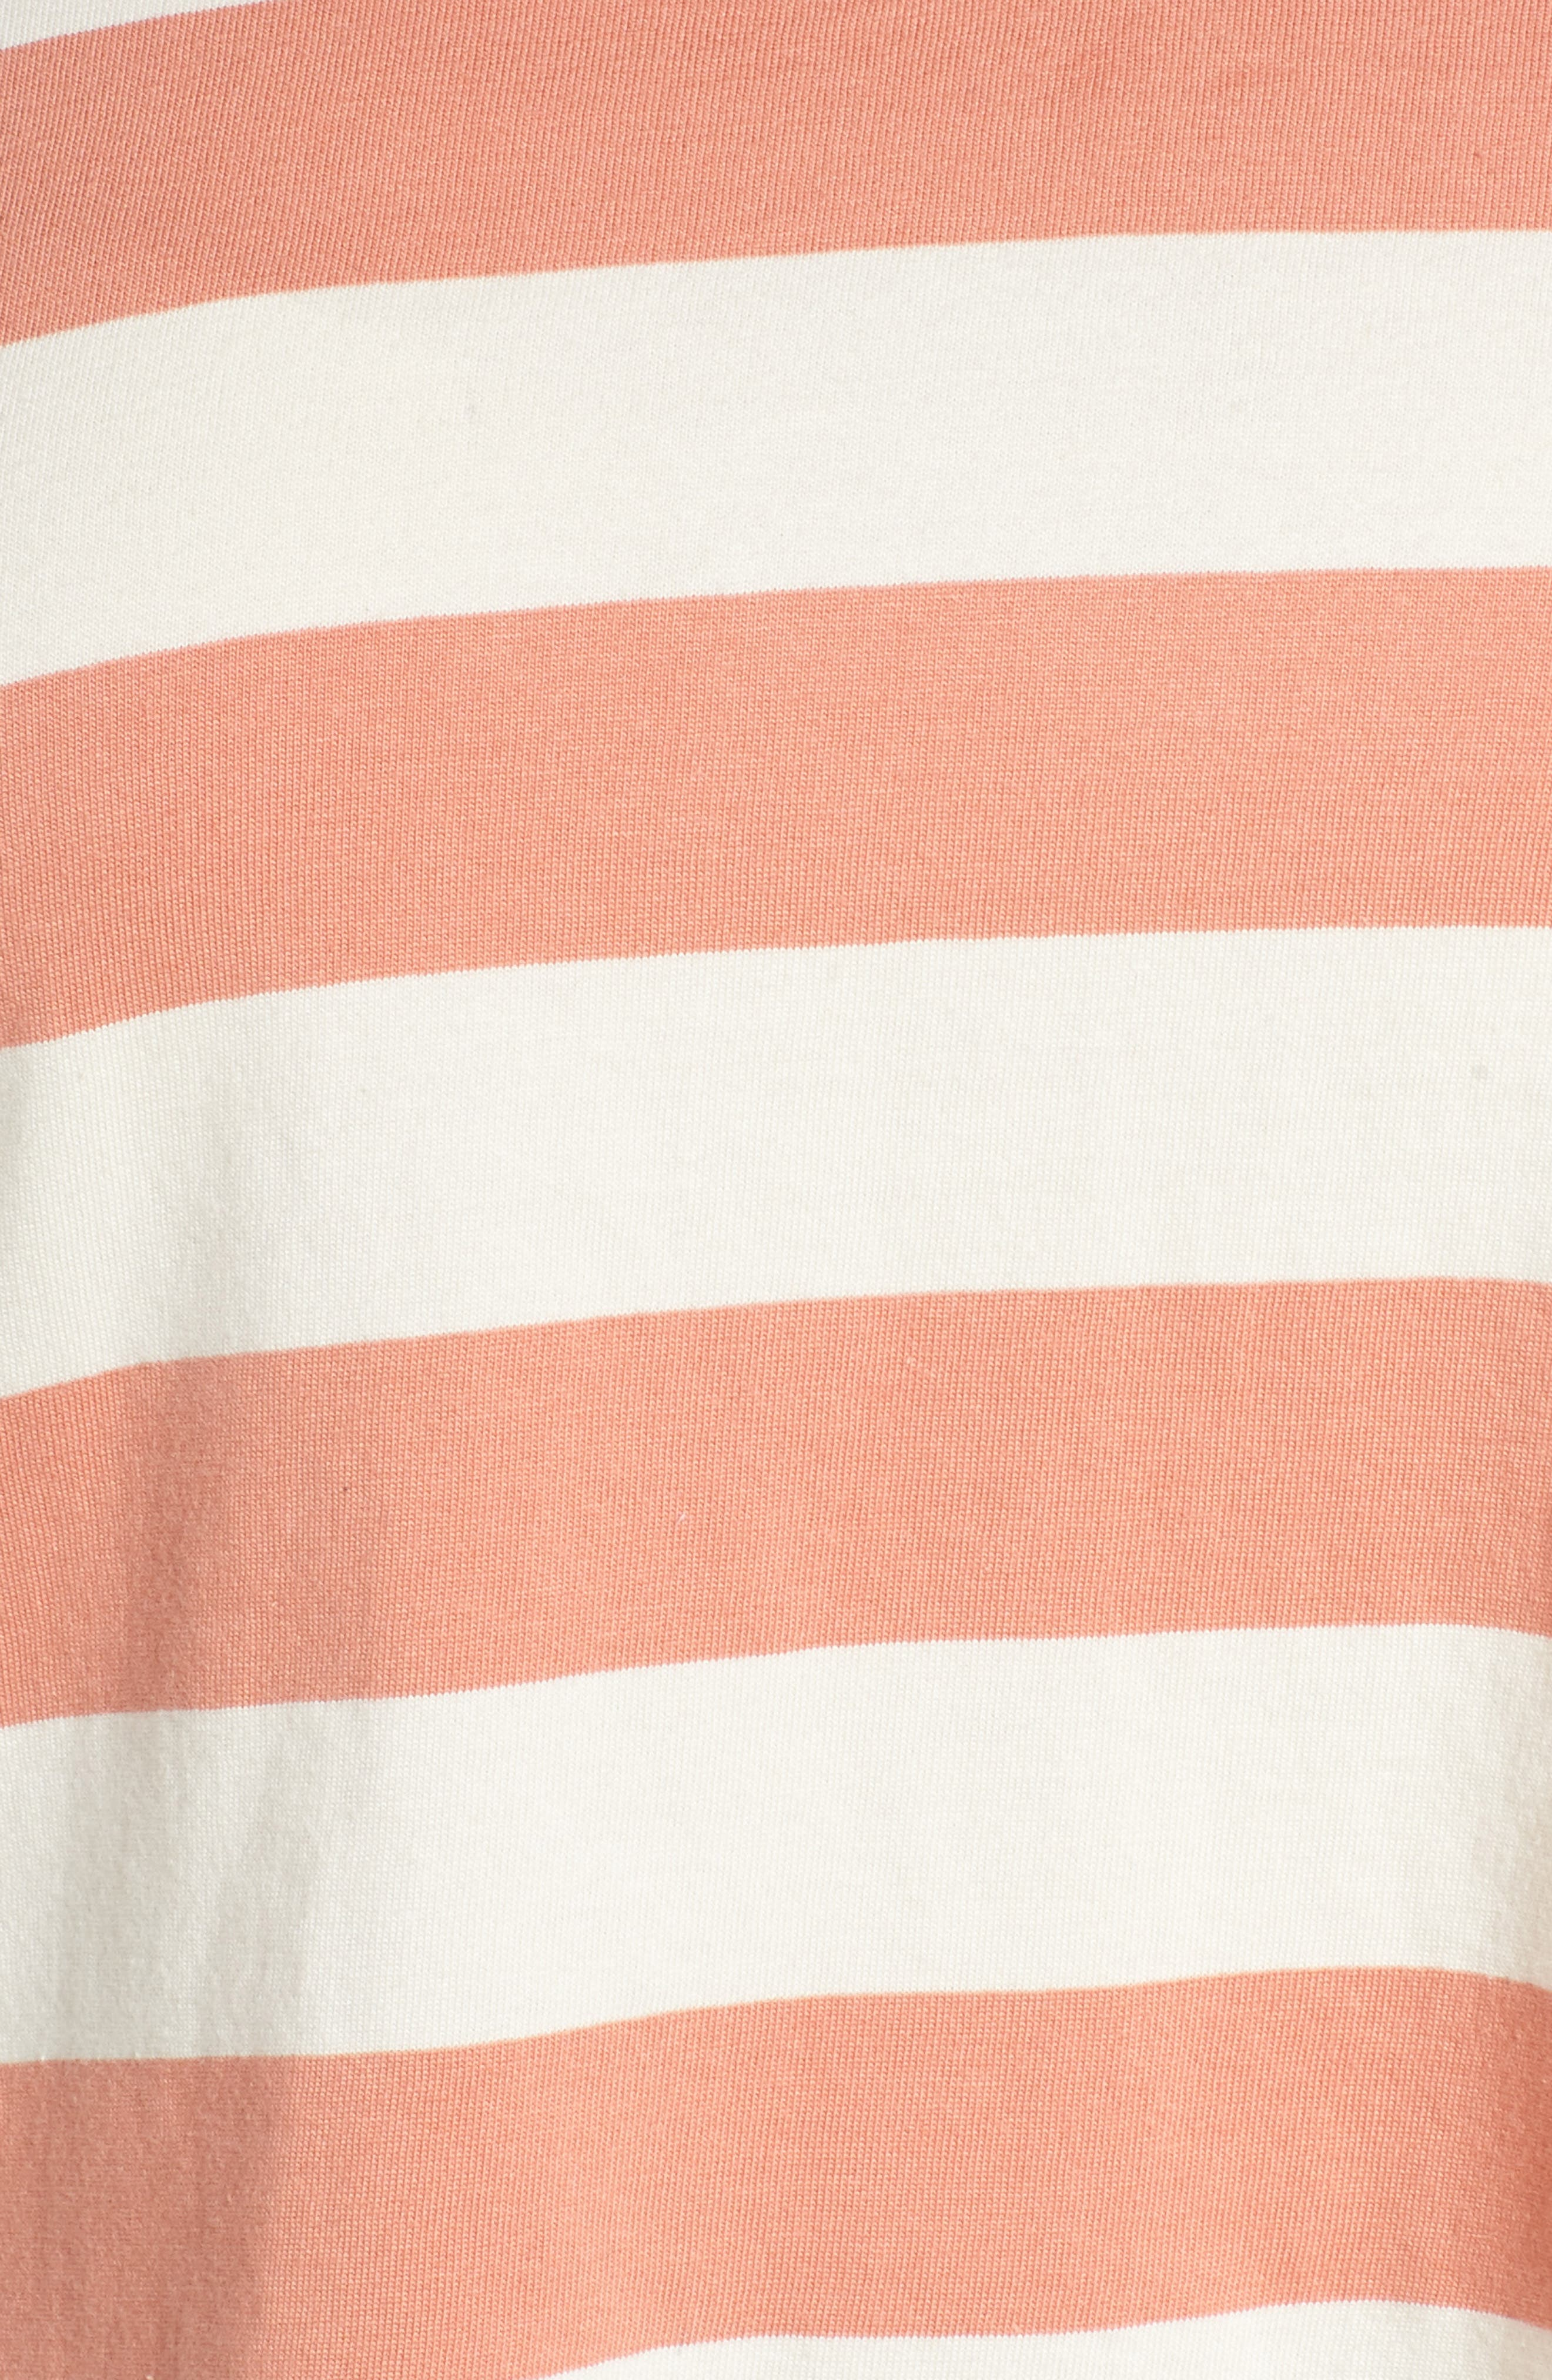 BP., Chambray Collar Polo, Alternate thumbnail 11, color, CORAL CLAY ROCKYPORT STRIPE